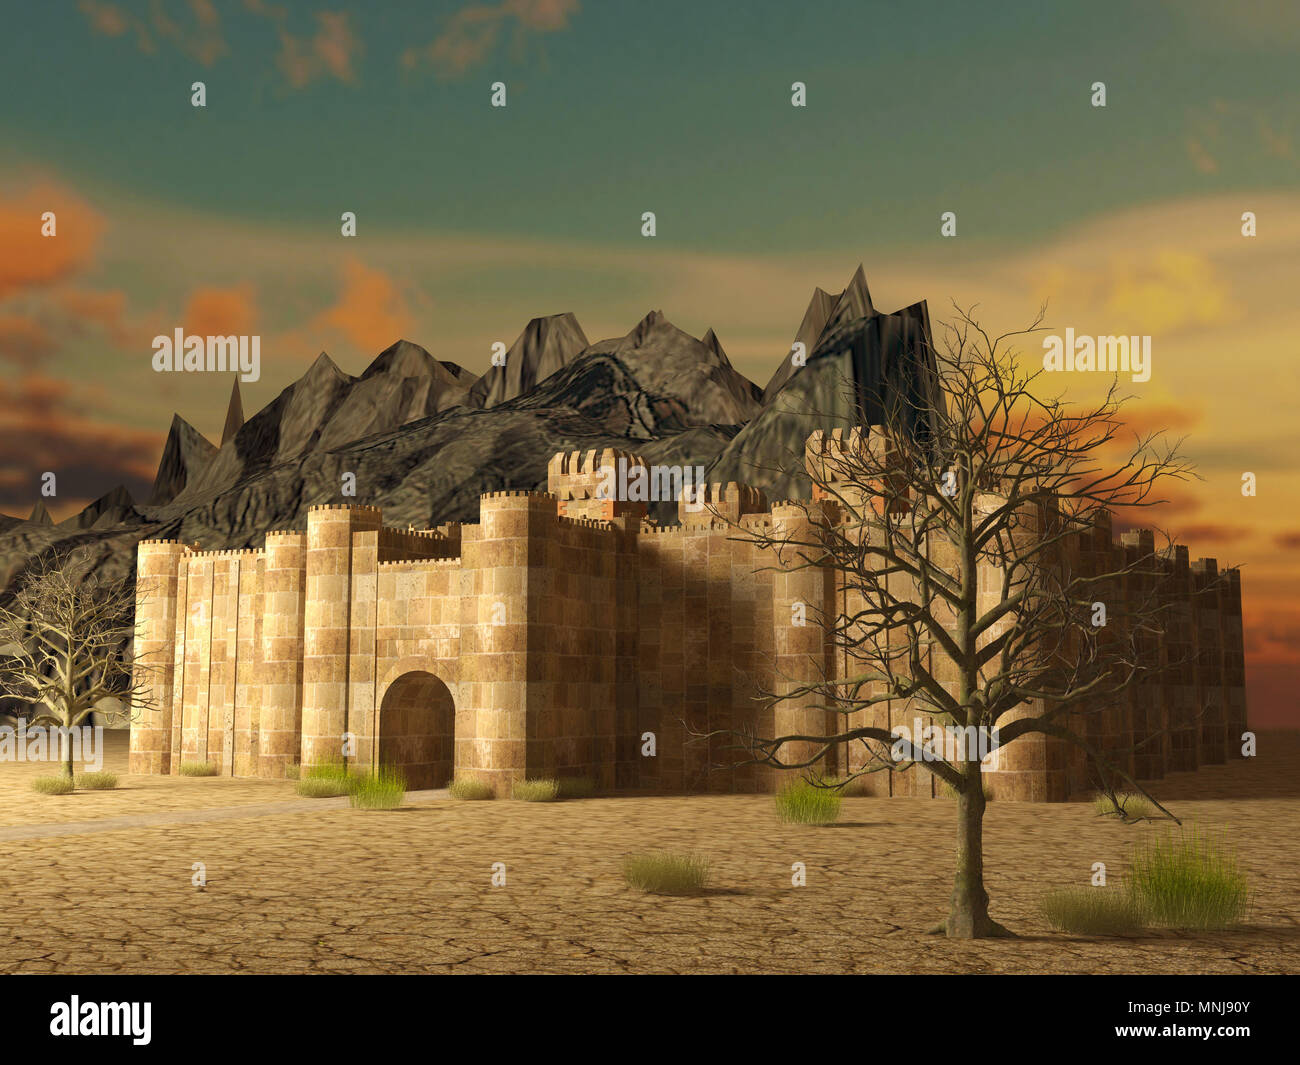 3d render medieval stronghold building exterior locates on cracked ground - Stock Image